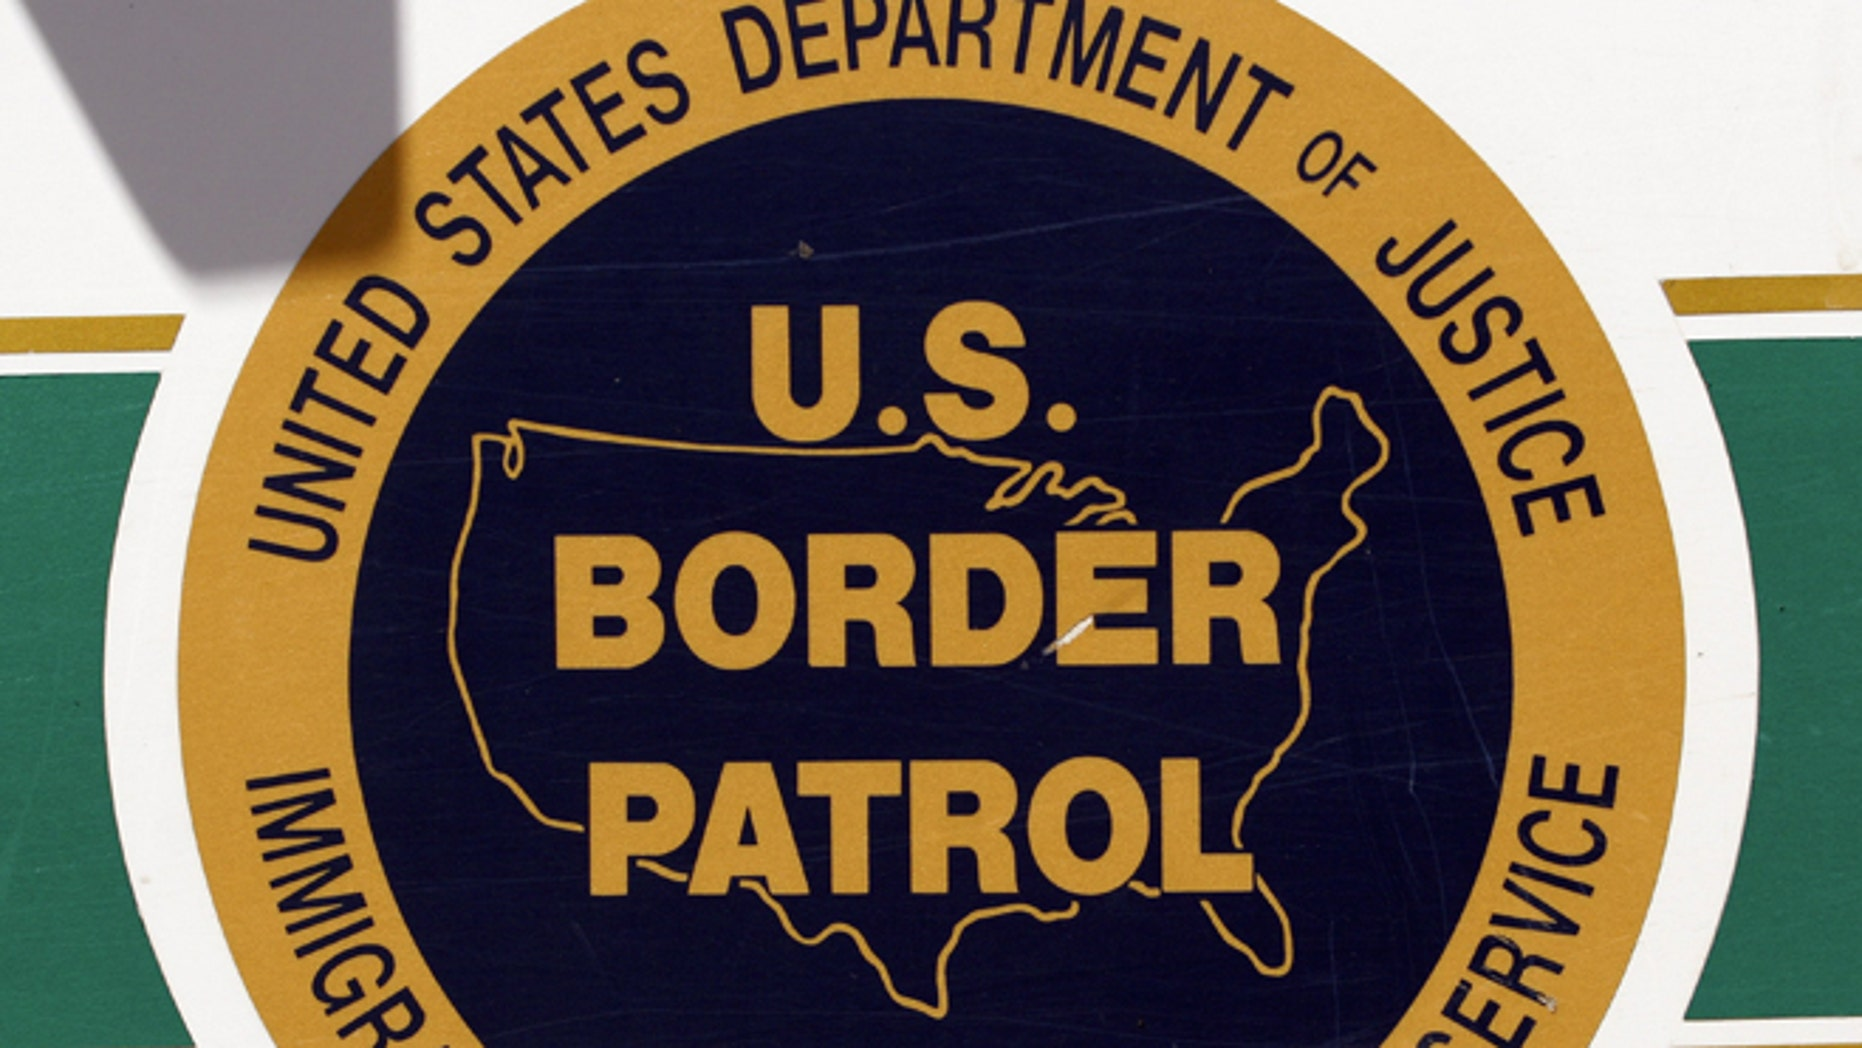 NOGALES, AZ - MAY 14:  The U.S. Border Patrol emblem is seen on the side of an agent's truck patrolling the border May 14, 2006 in Nogales, Arizona. U.S. President George W. Bush will address the nation on the immigration issue May 15.  (Photo by Jeff Topping/Getty Images)